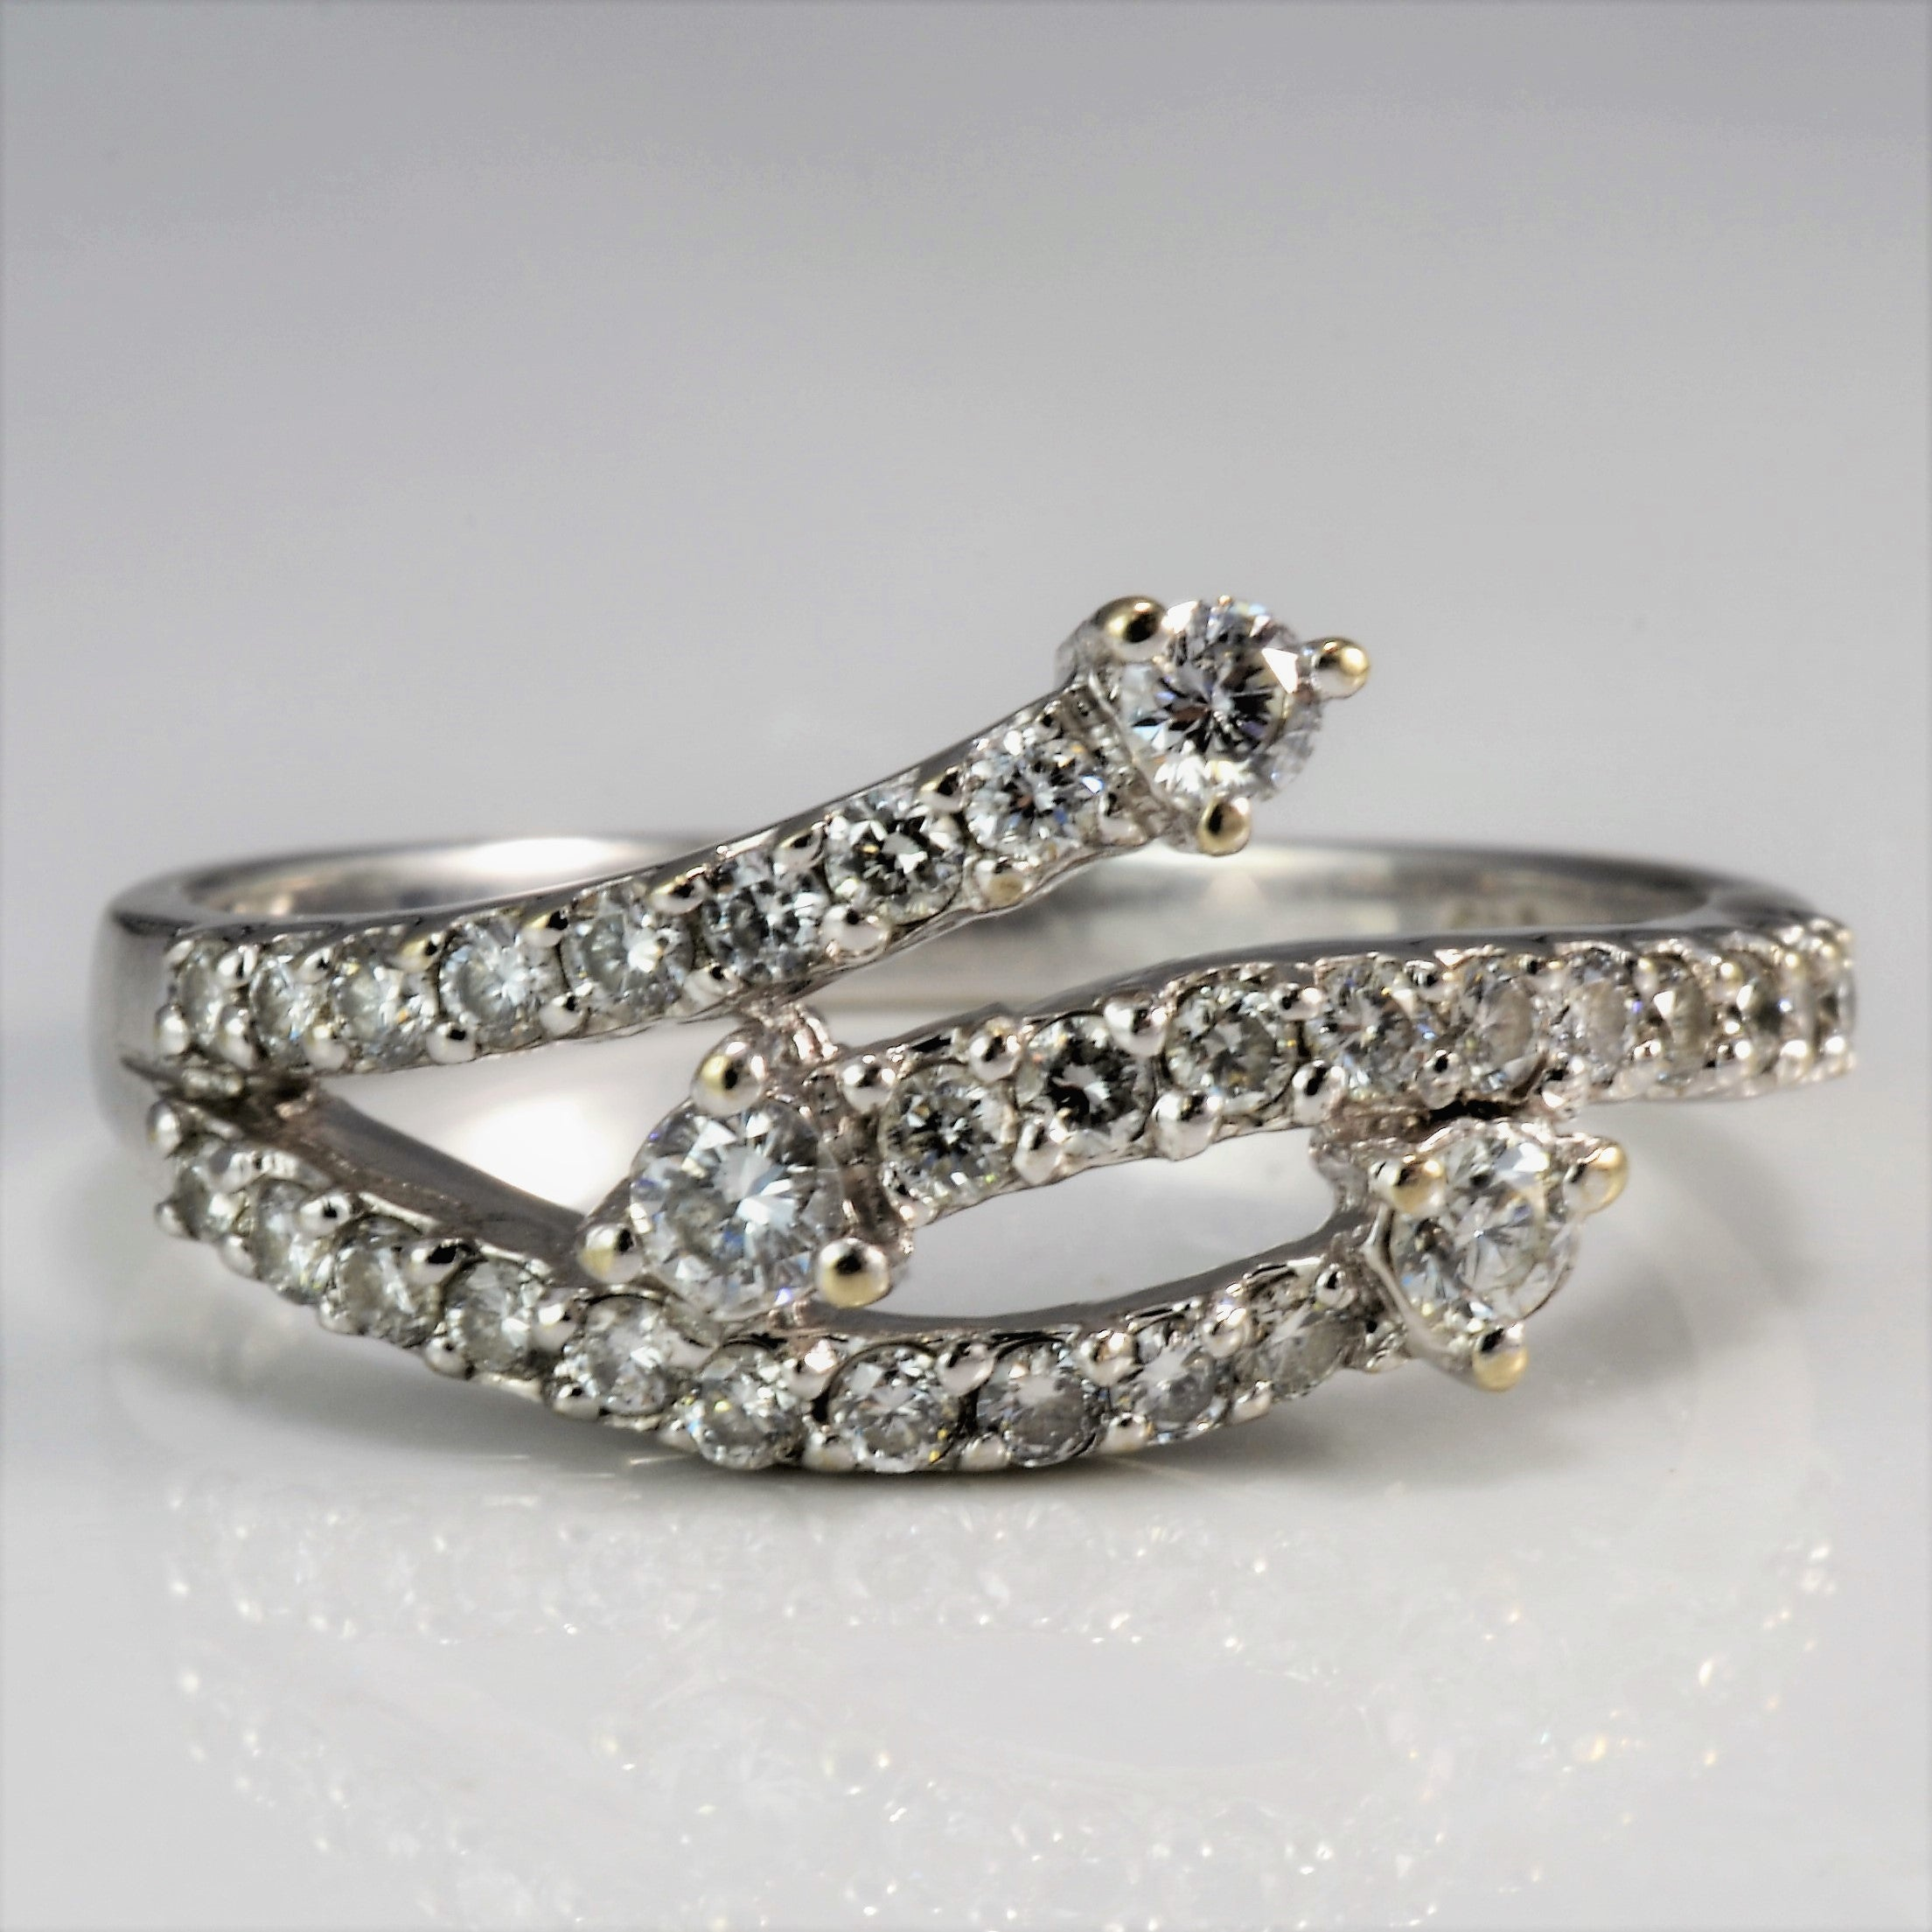 Bypass Pave Set Diamond Ring | 0.40 ctw, SZ 6.5 |